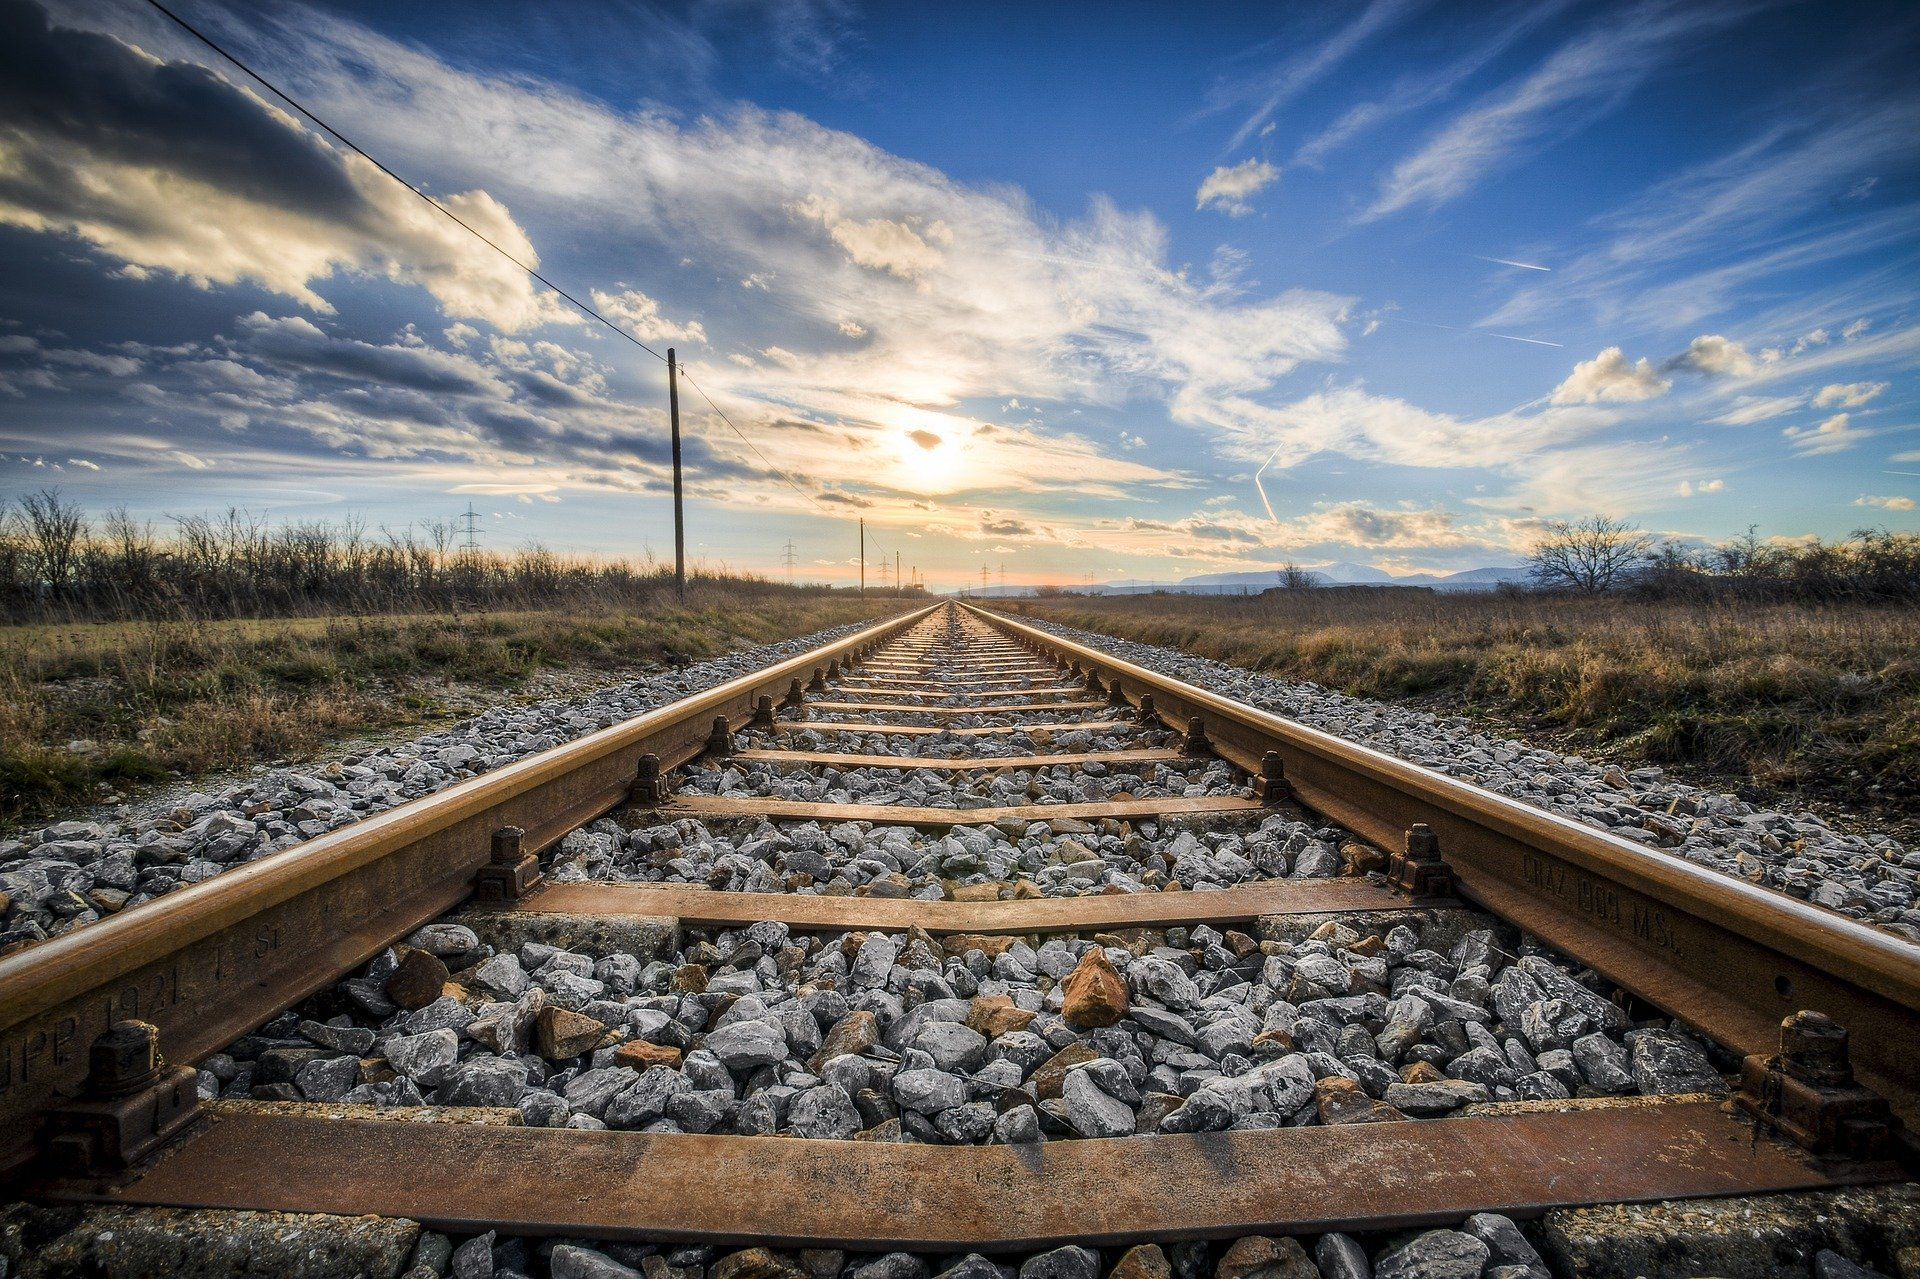 train-tracks-georgia-sun-sky